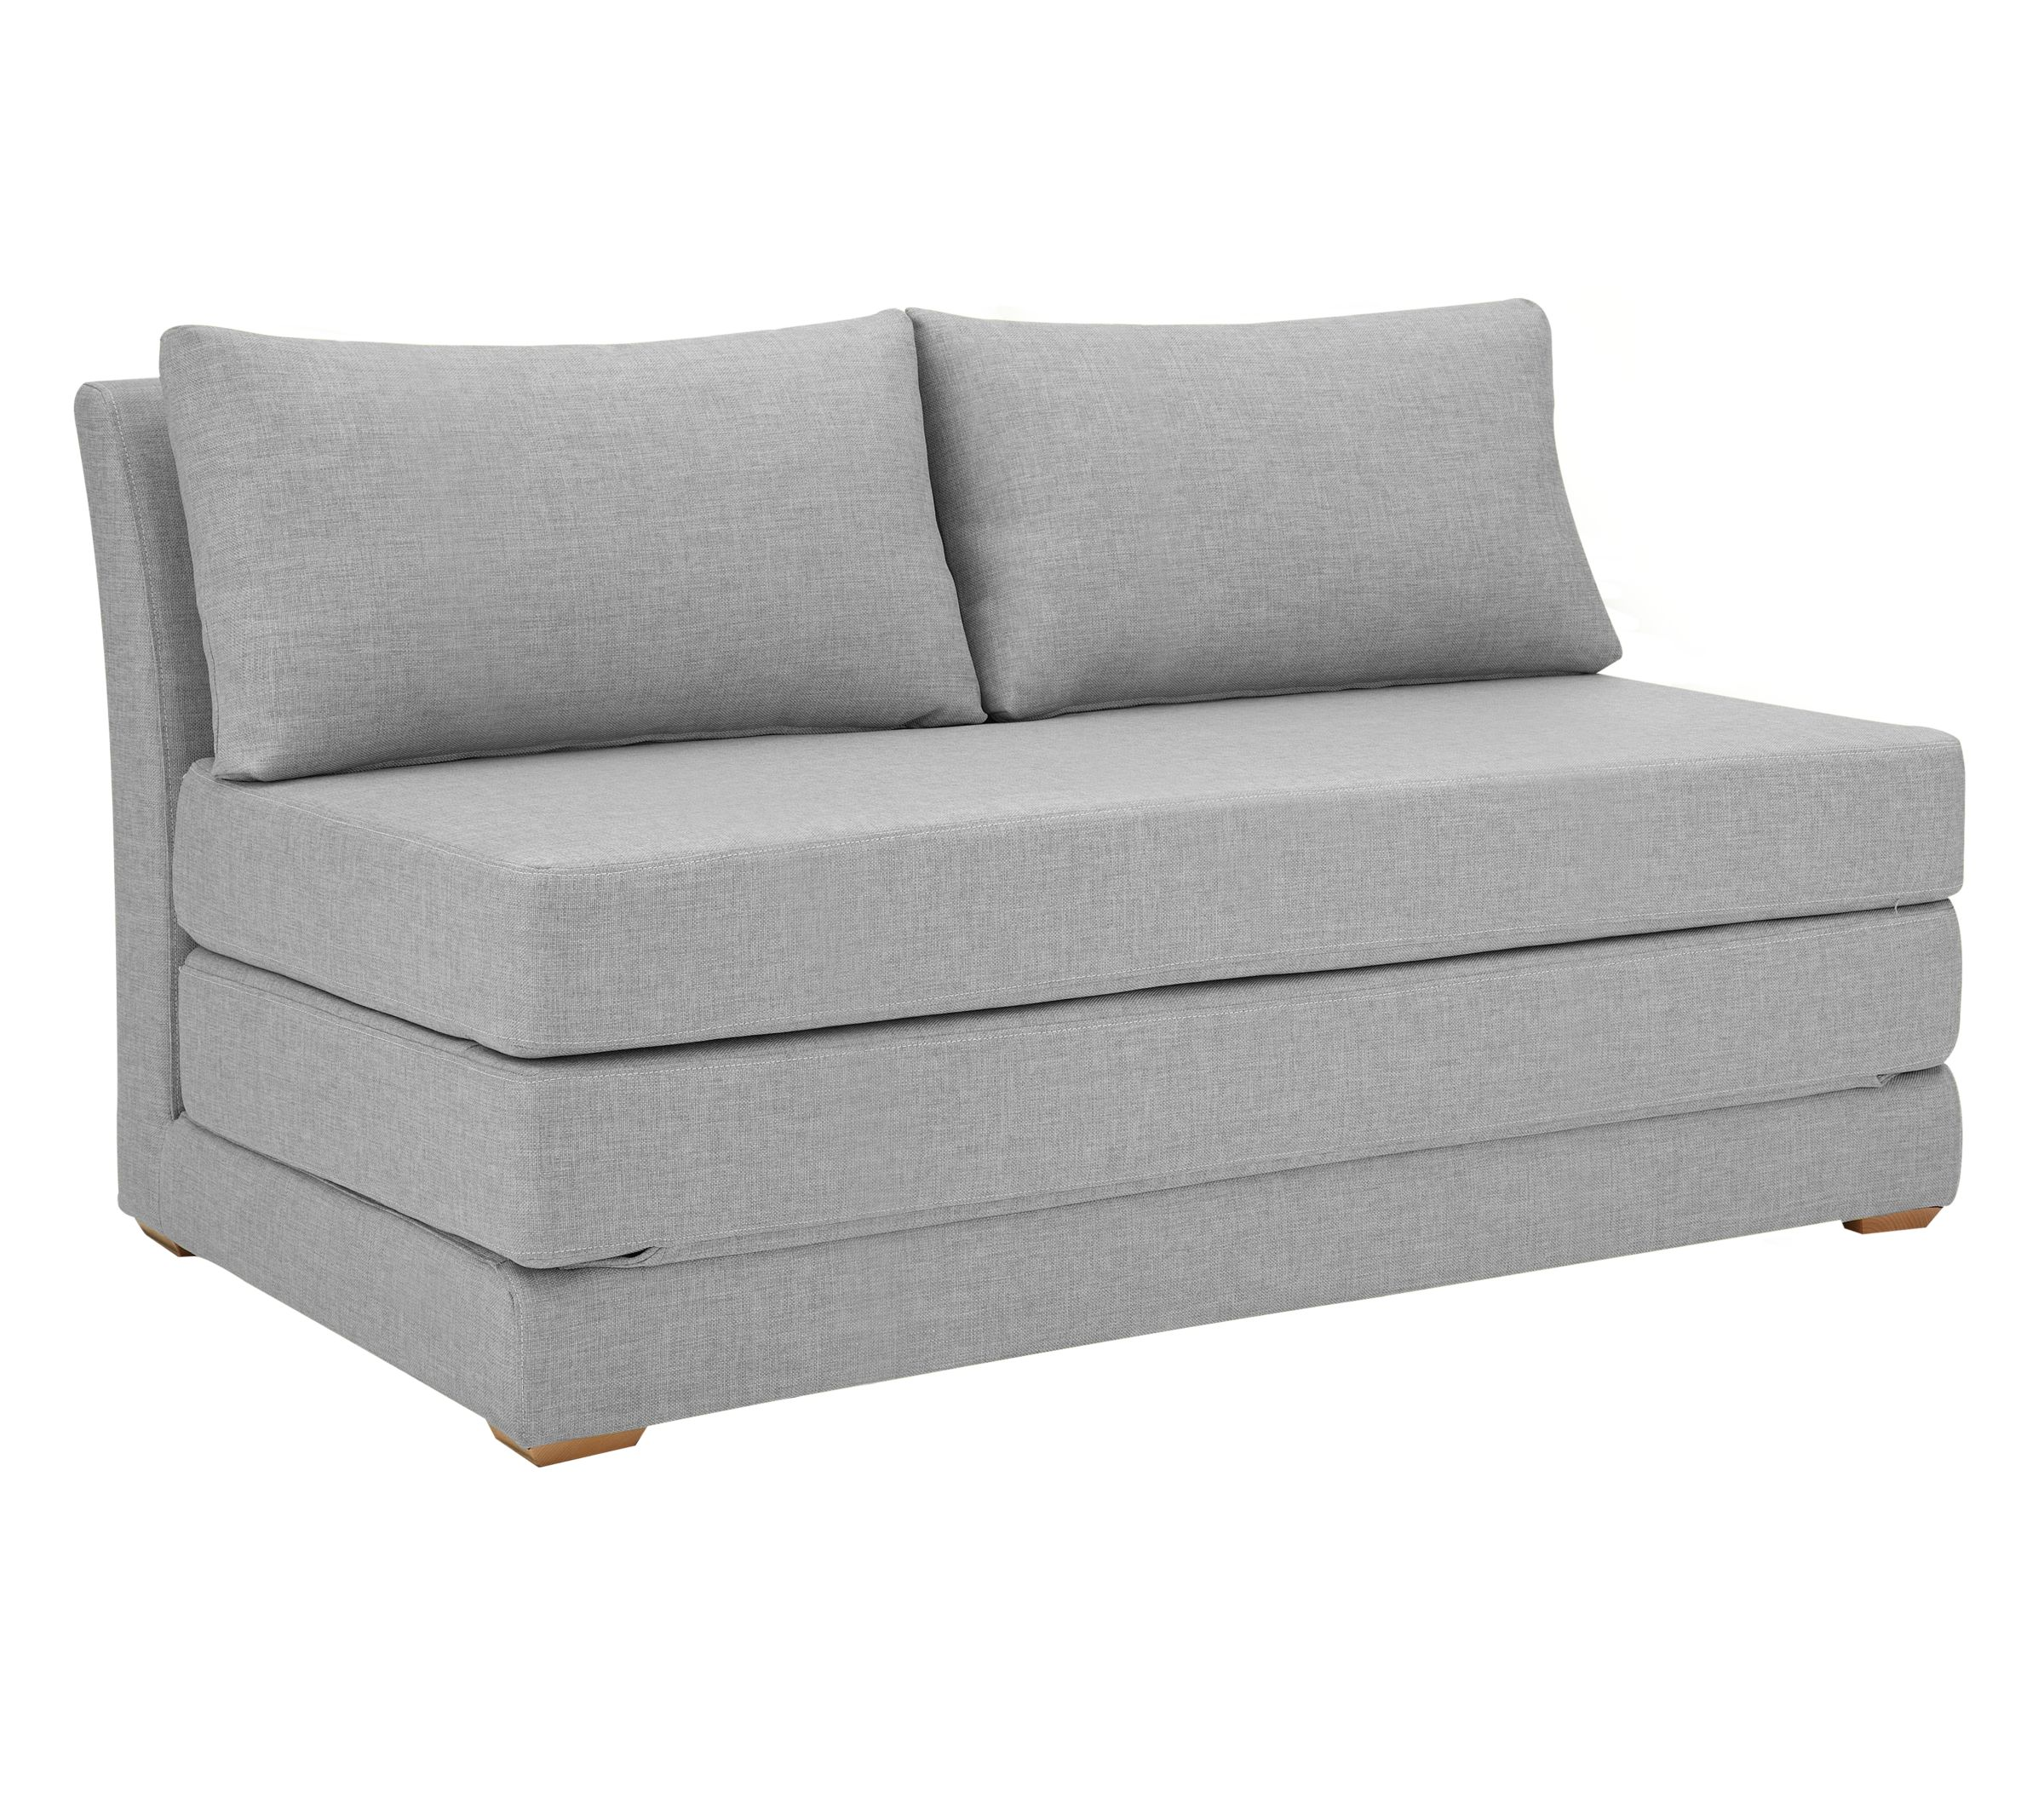 Design Small Sofa Bed buy john lewis kip small sofa bed with foam mattress light leg kyla teal